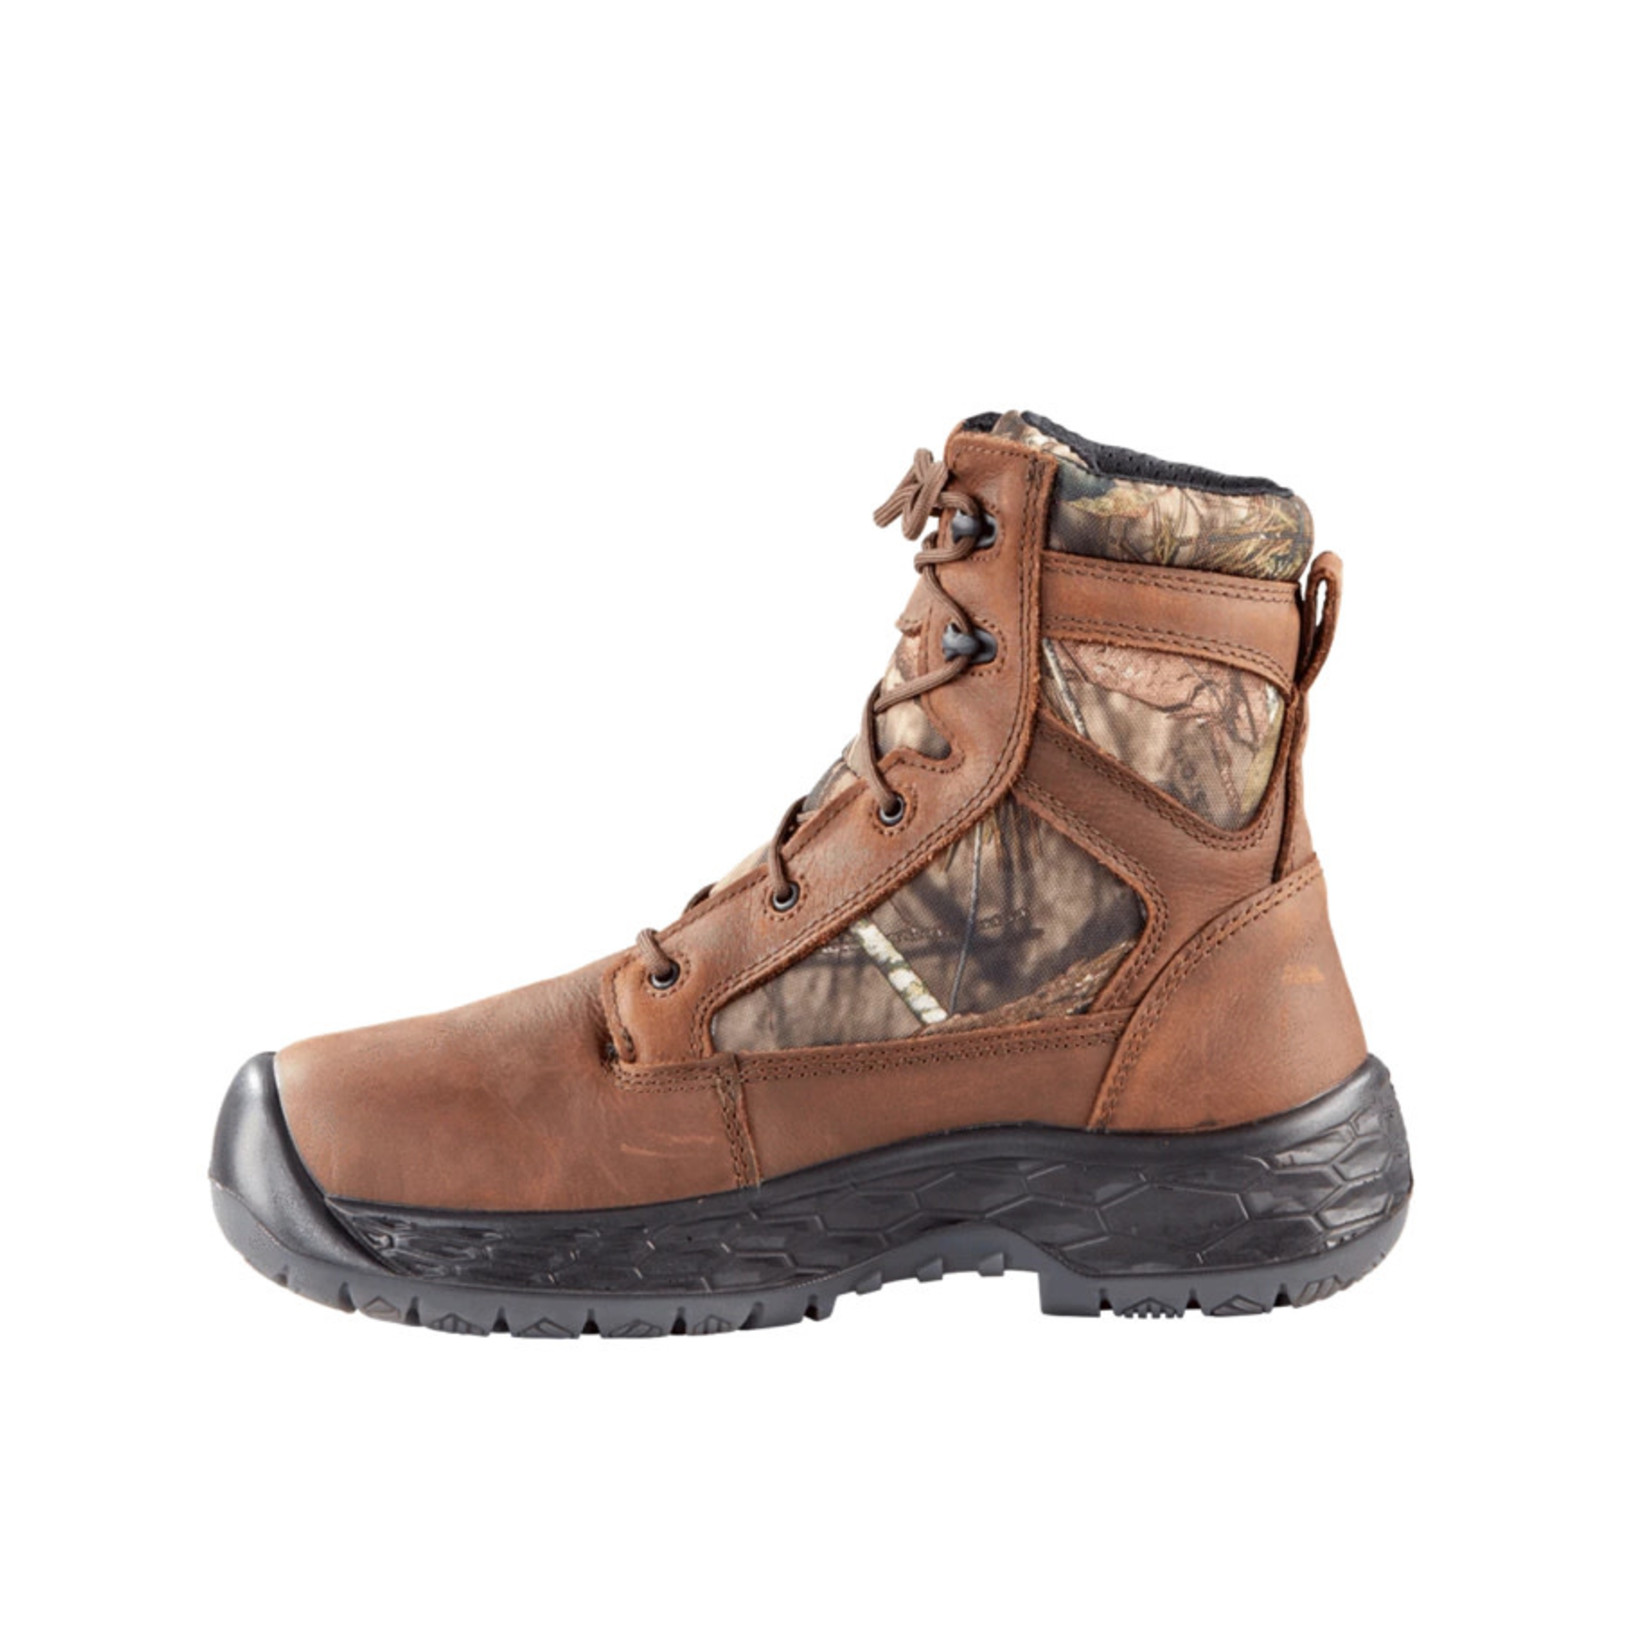 Baffin Baffin Men's Pacer Hunting Boot Mossy Oak CFLX-M006